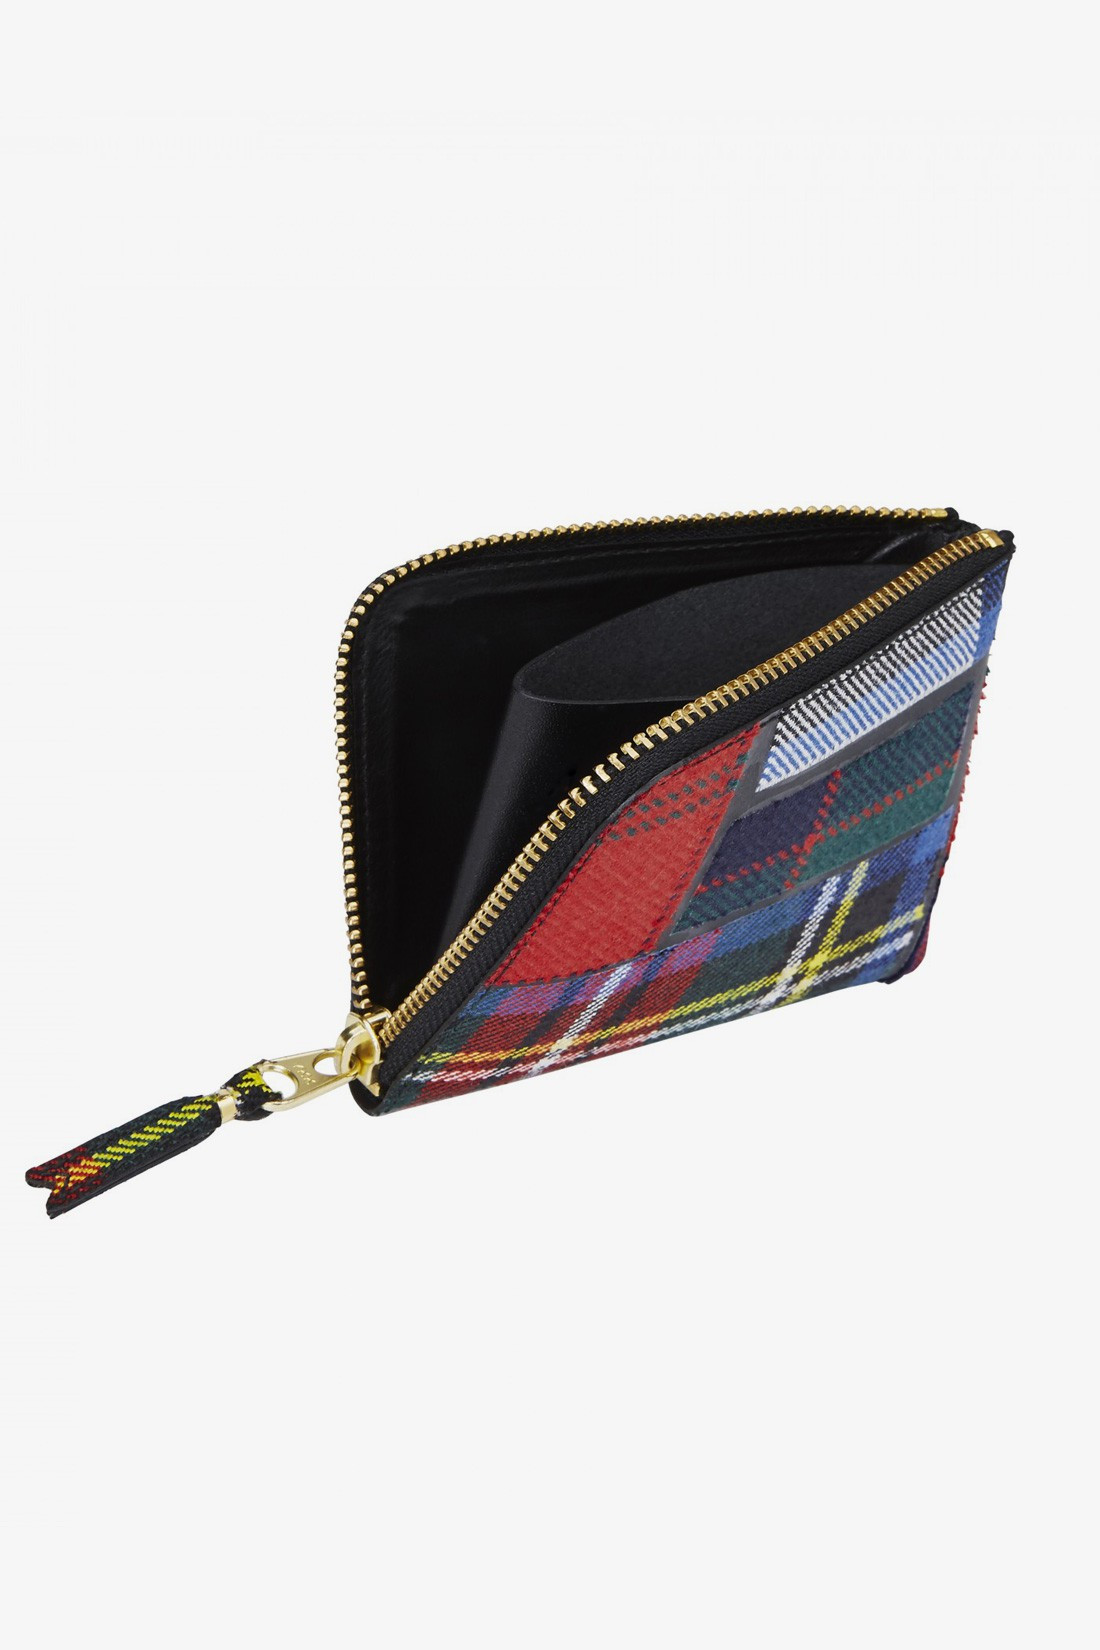 CDG WALLETS / Cdg wallet tartan sa3100tp Red